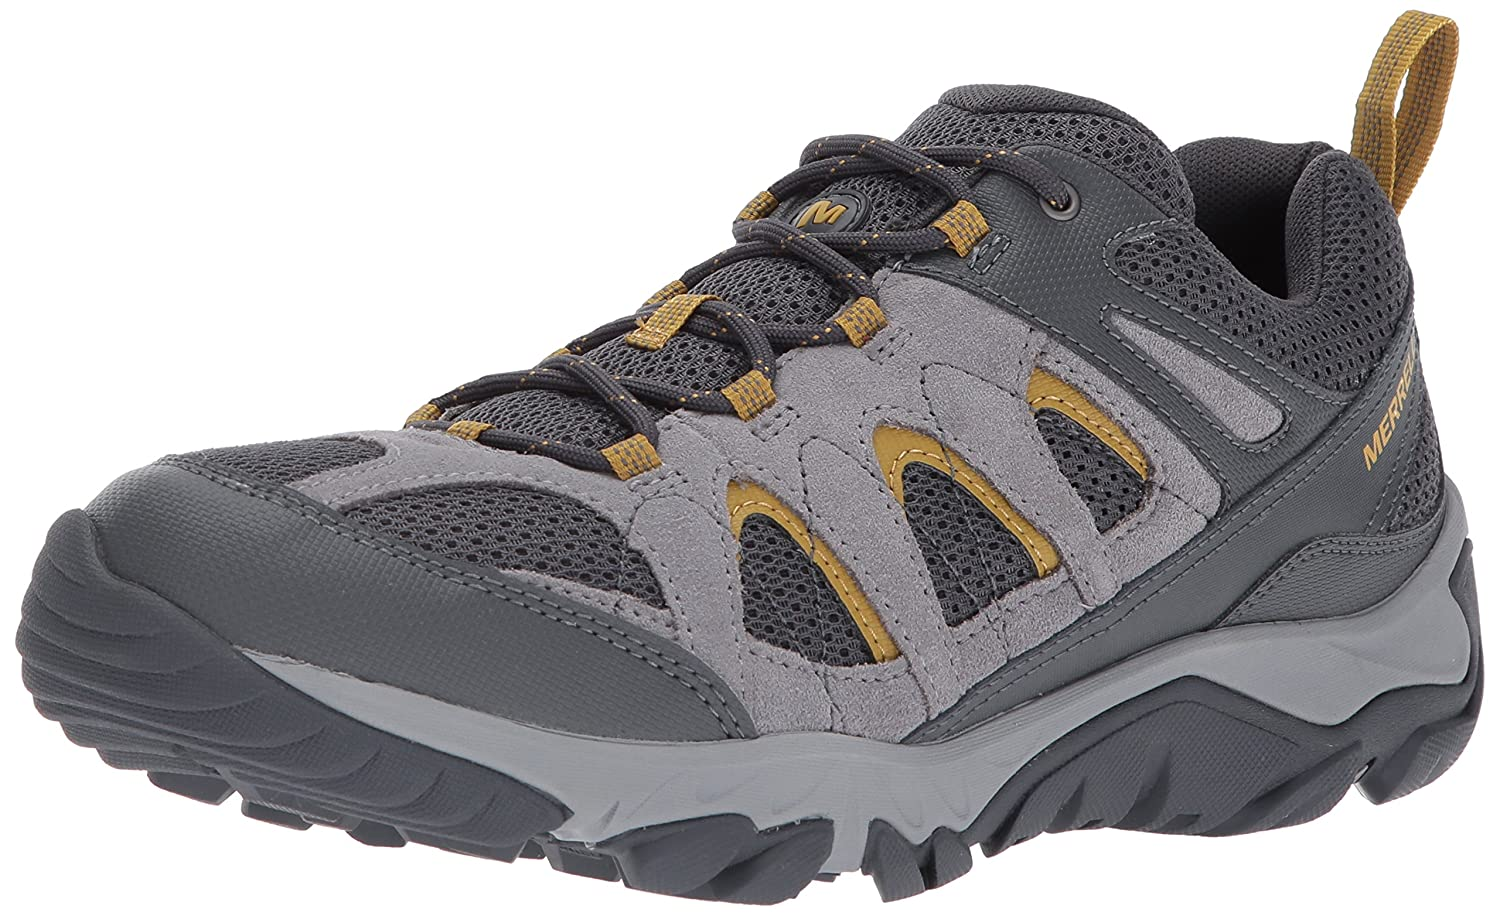 Merrell Women's Outmost Vent Hiking Boot B01N9HPZVH 07 M US|Frost Grey